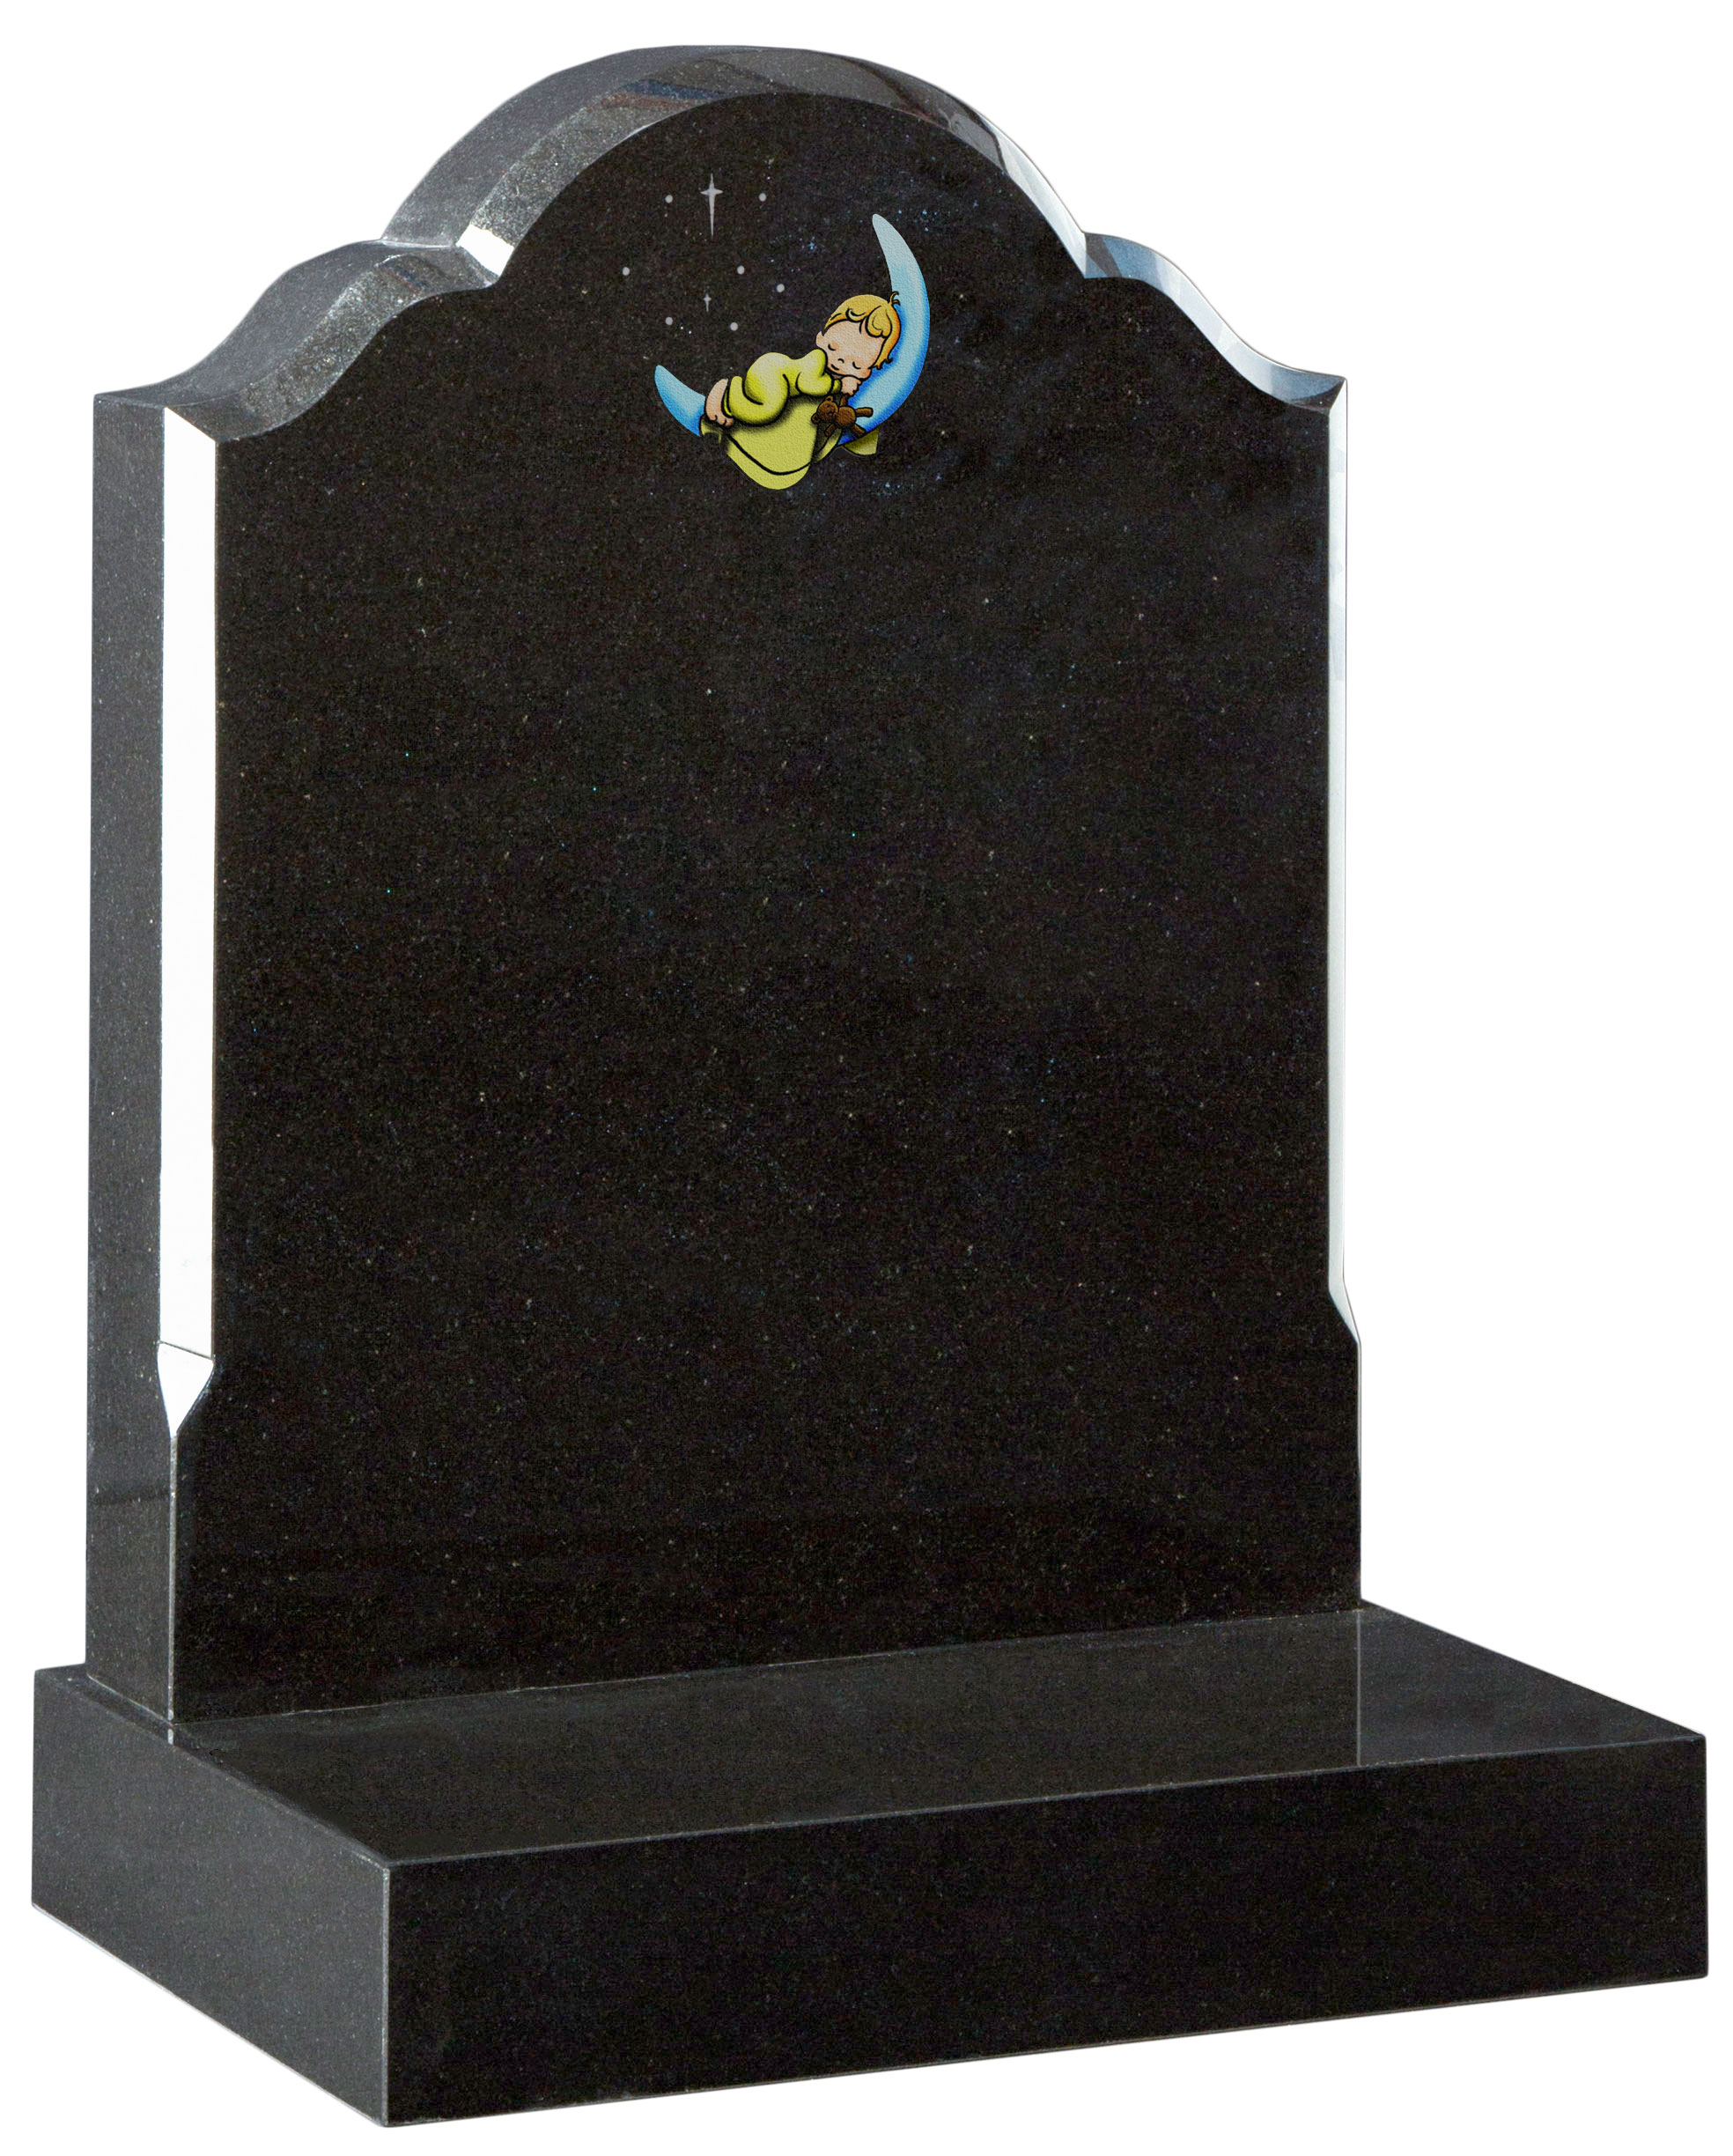 16162  Organically shaped headstone